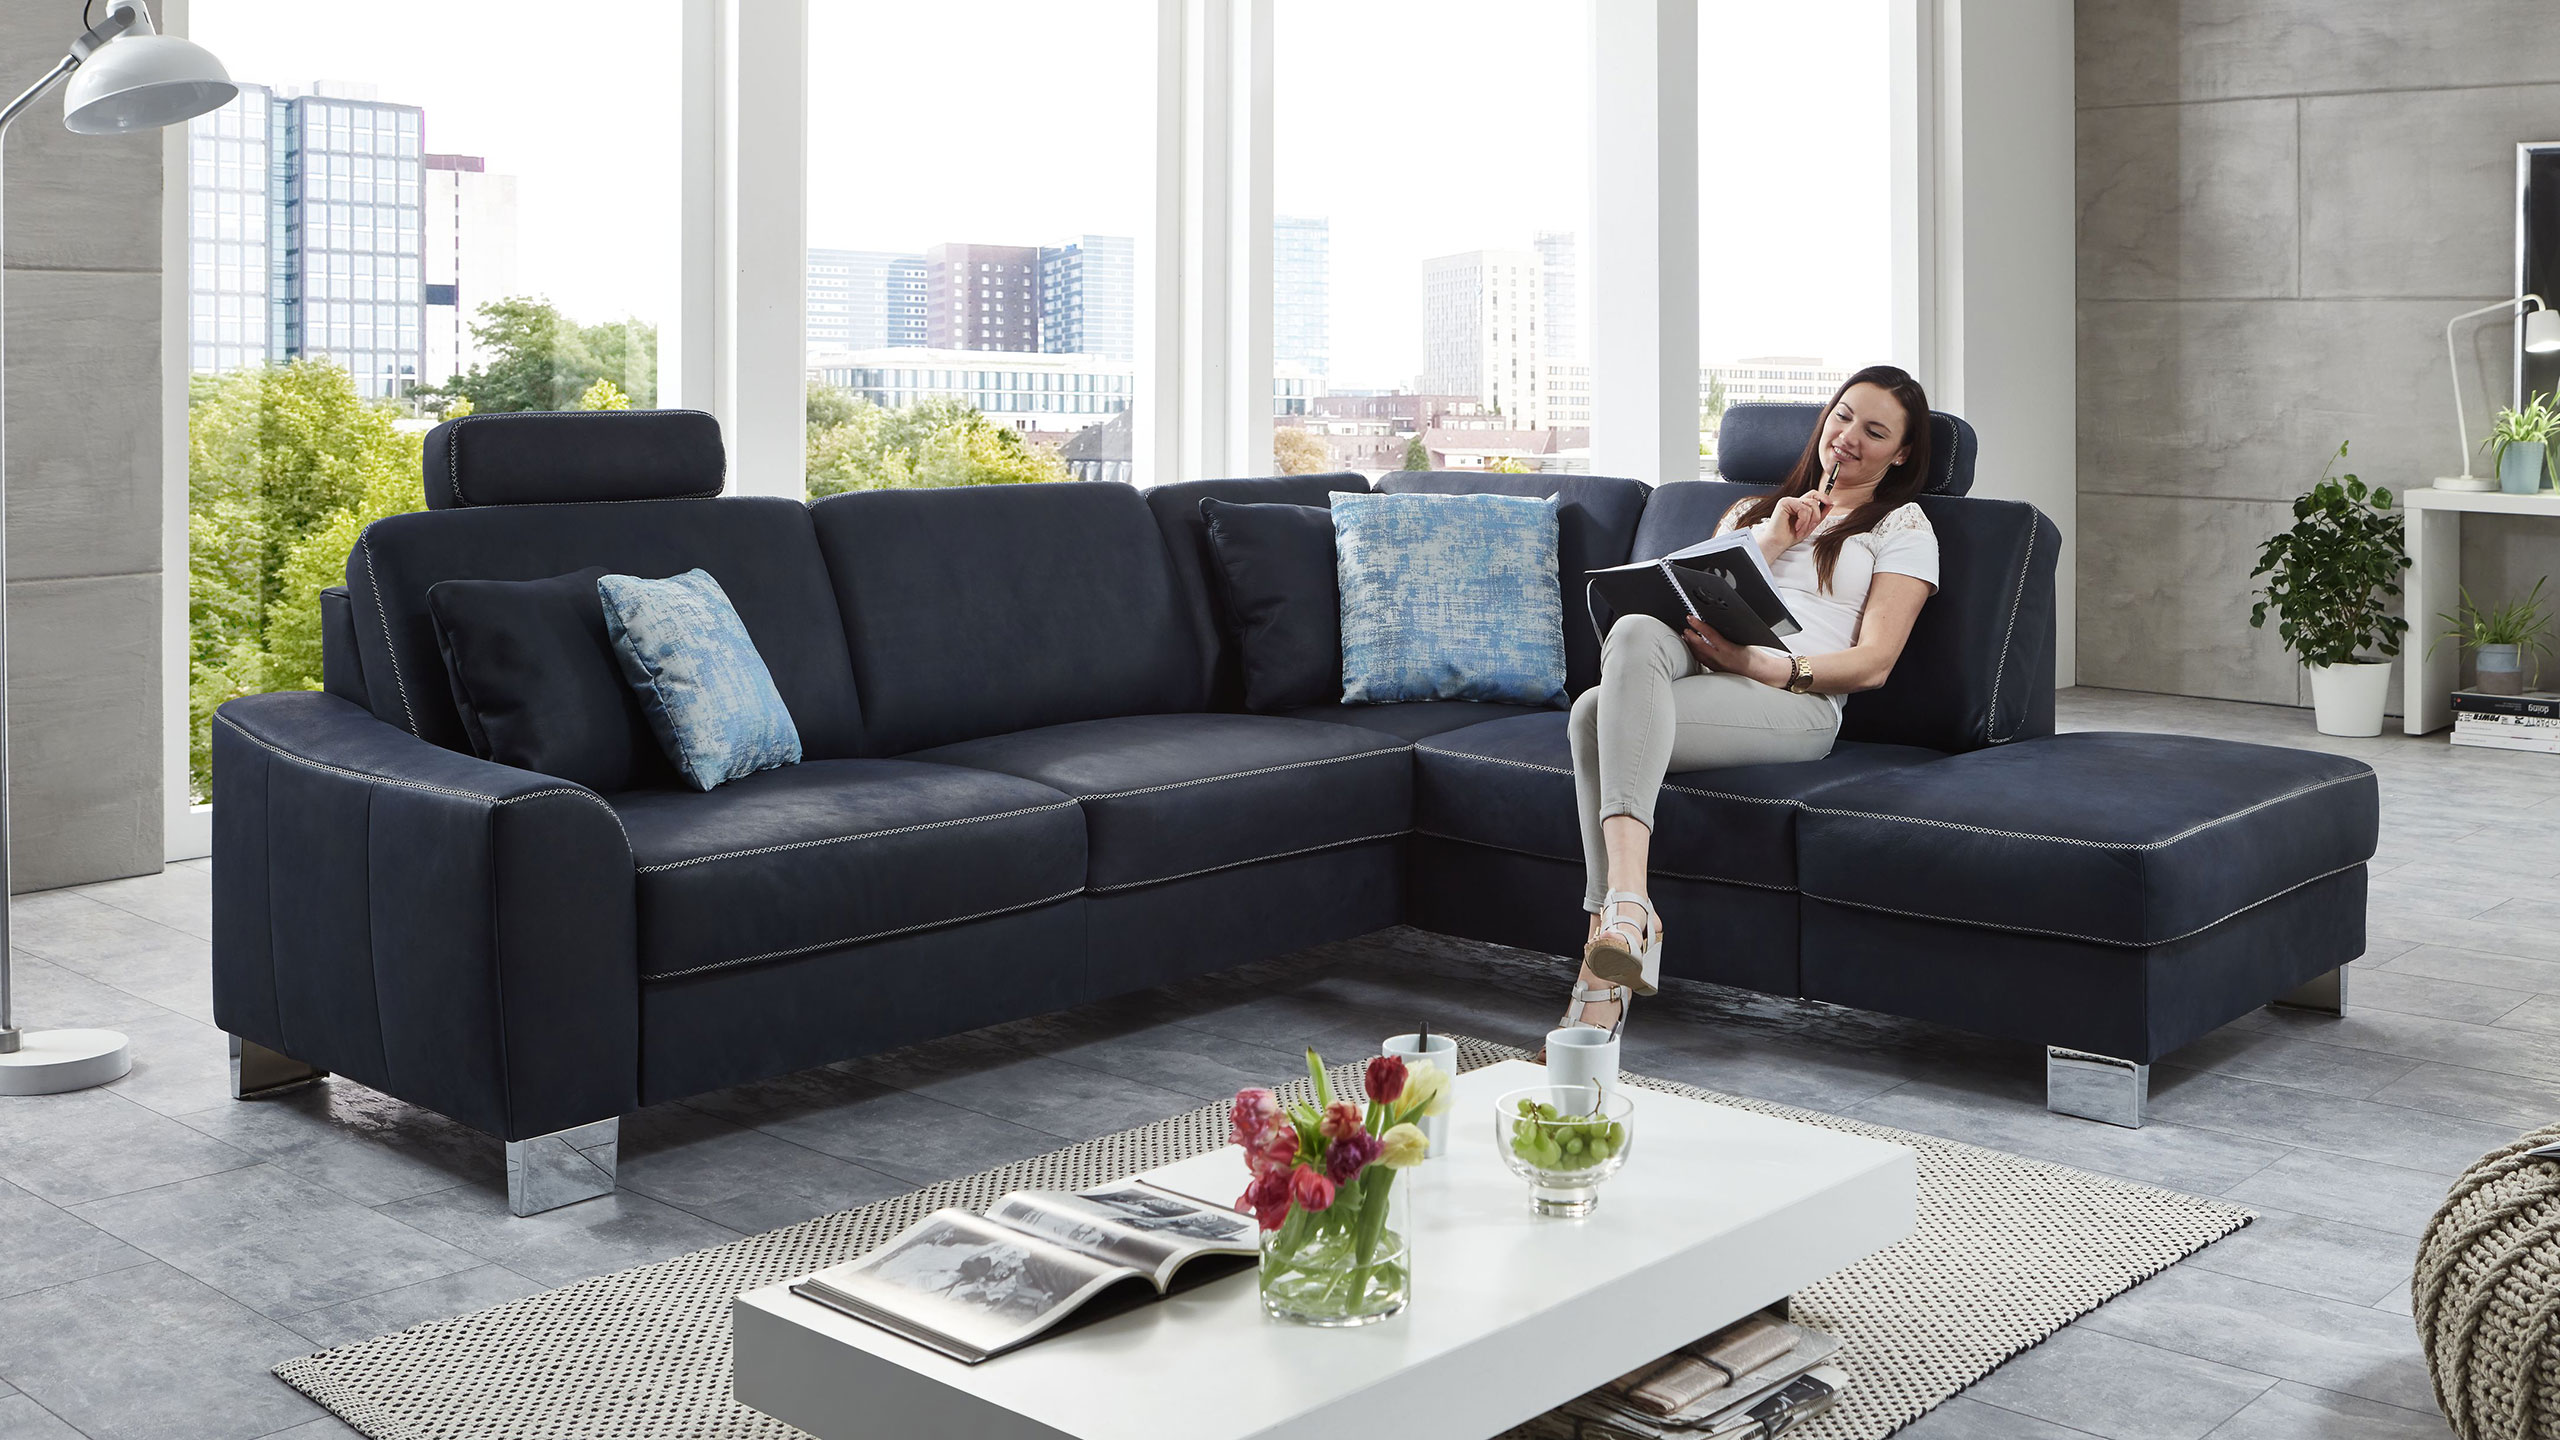 SC family/ select 1028 Ecksofa Blau